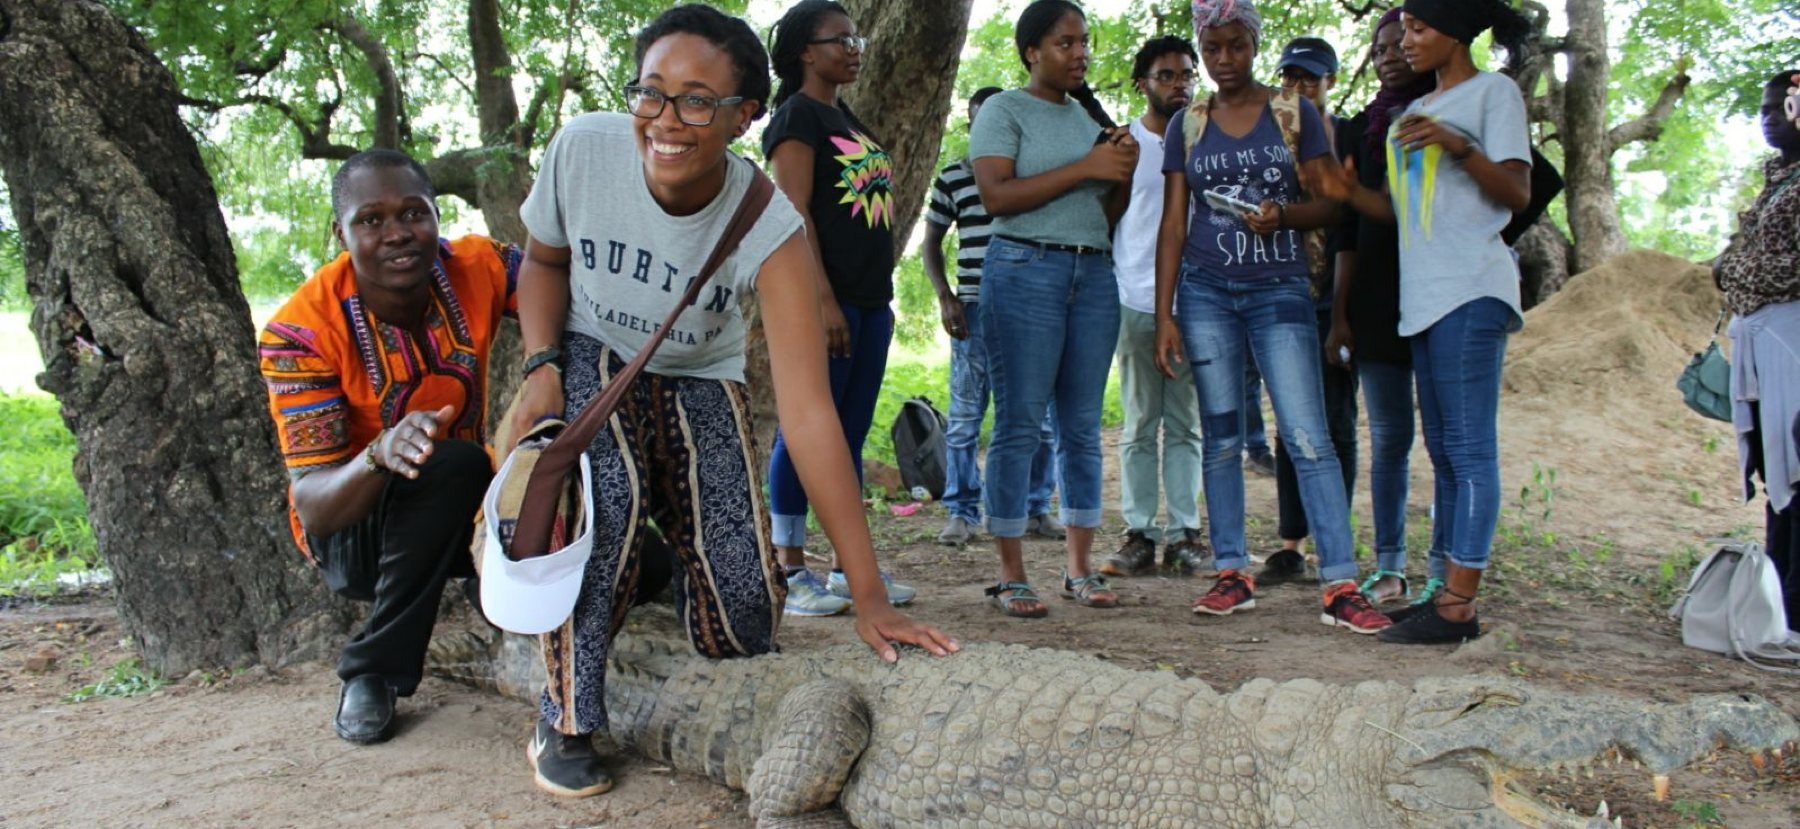 Woman leans over to pet an alligator in front of a group of people.